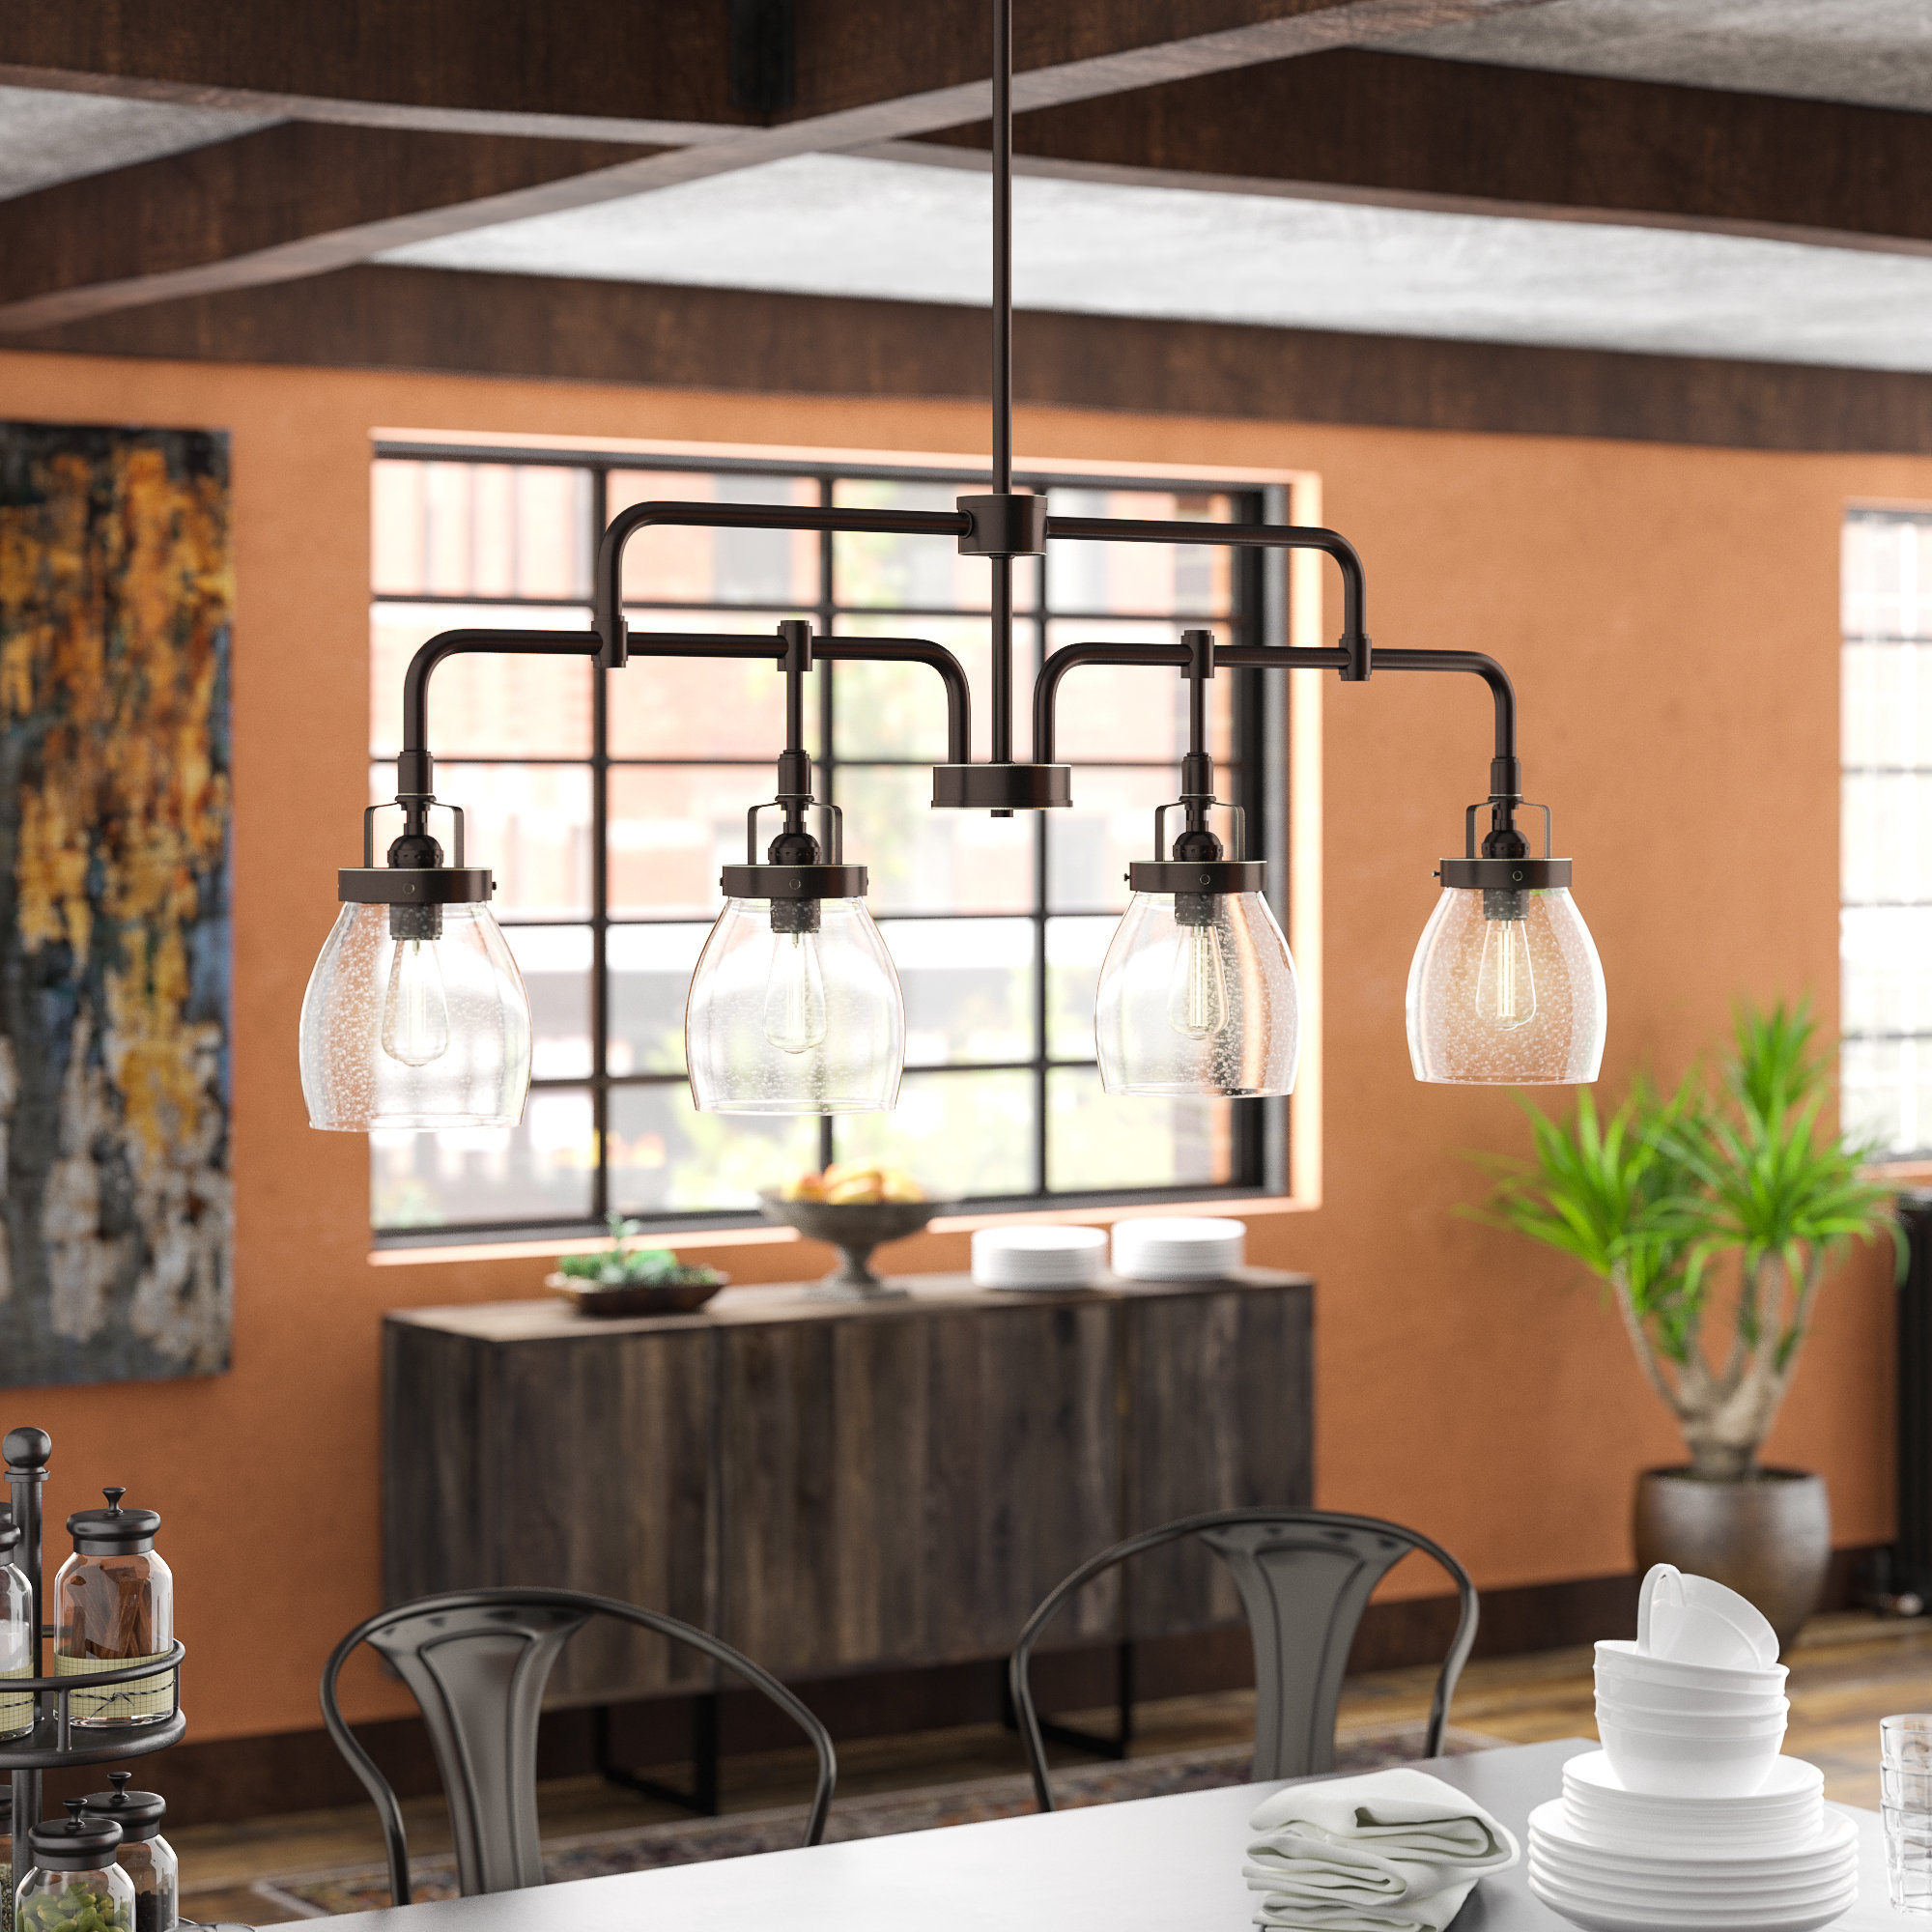 Cinchring 4 Light Kitchen Island Linear Pendants With Regard To Most Current Houon 4 Light Kitchen Island Pendant (View 5 of 20)